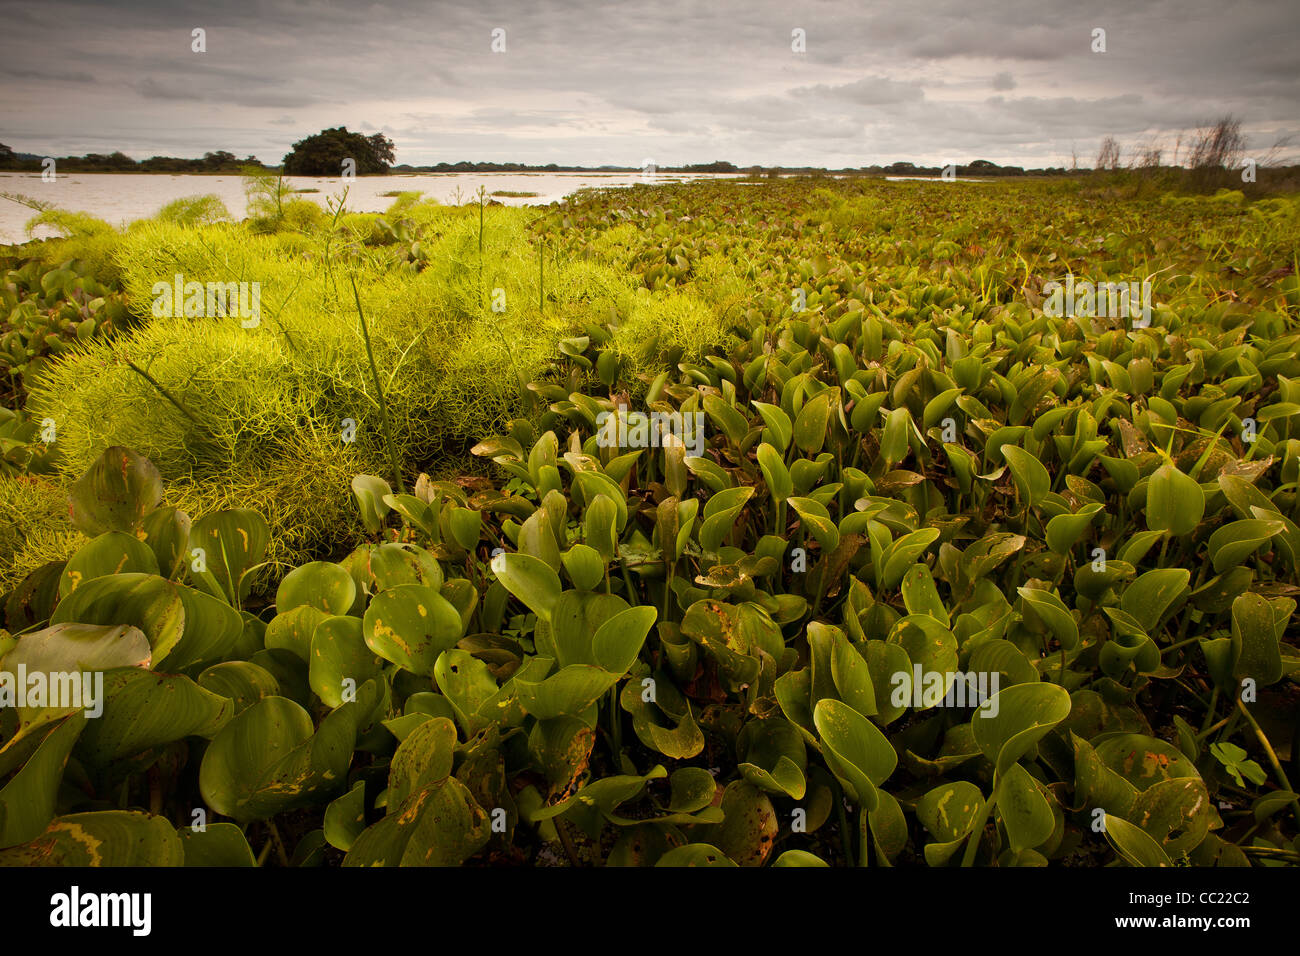 Water plants in Refugio de vida Silvestre Cienaga las Macanas, protected wetlands, in Herrera province, Republic Stock Photo